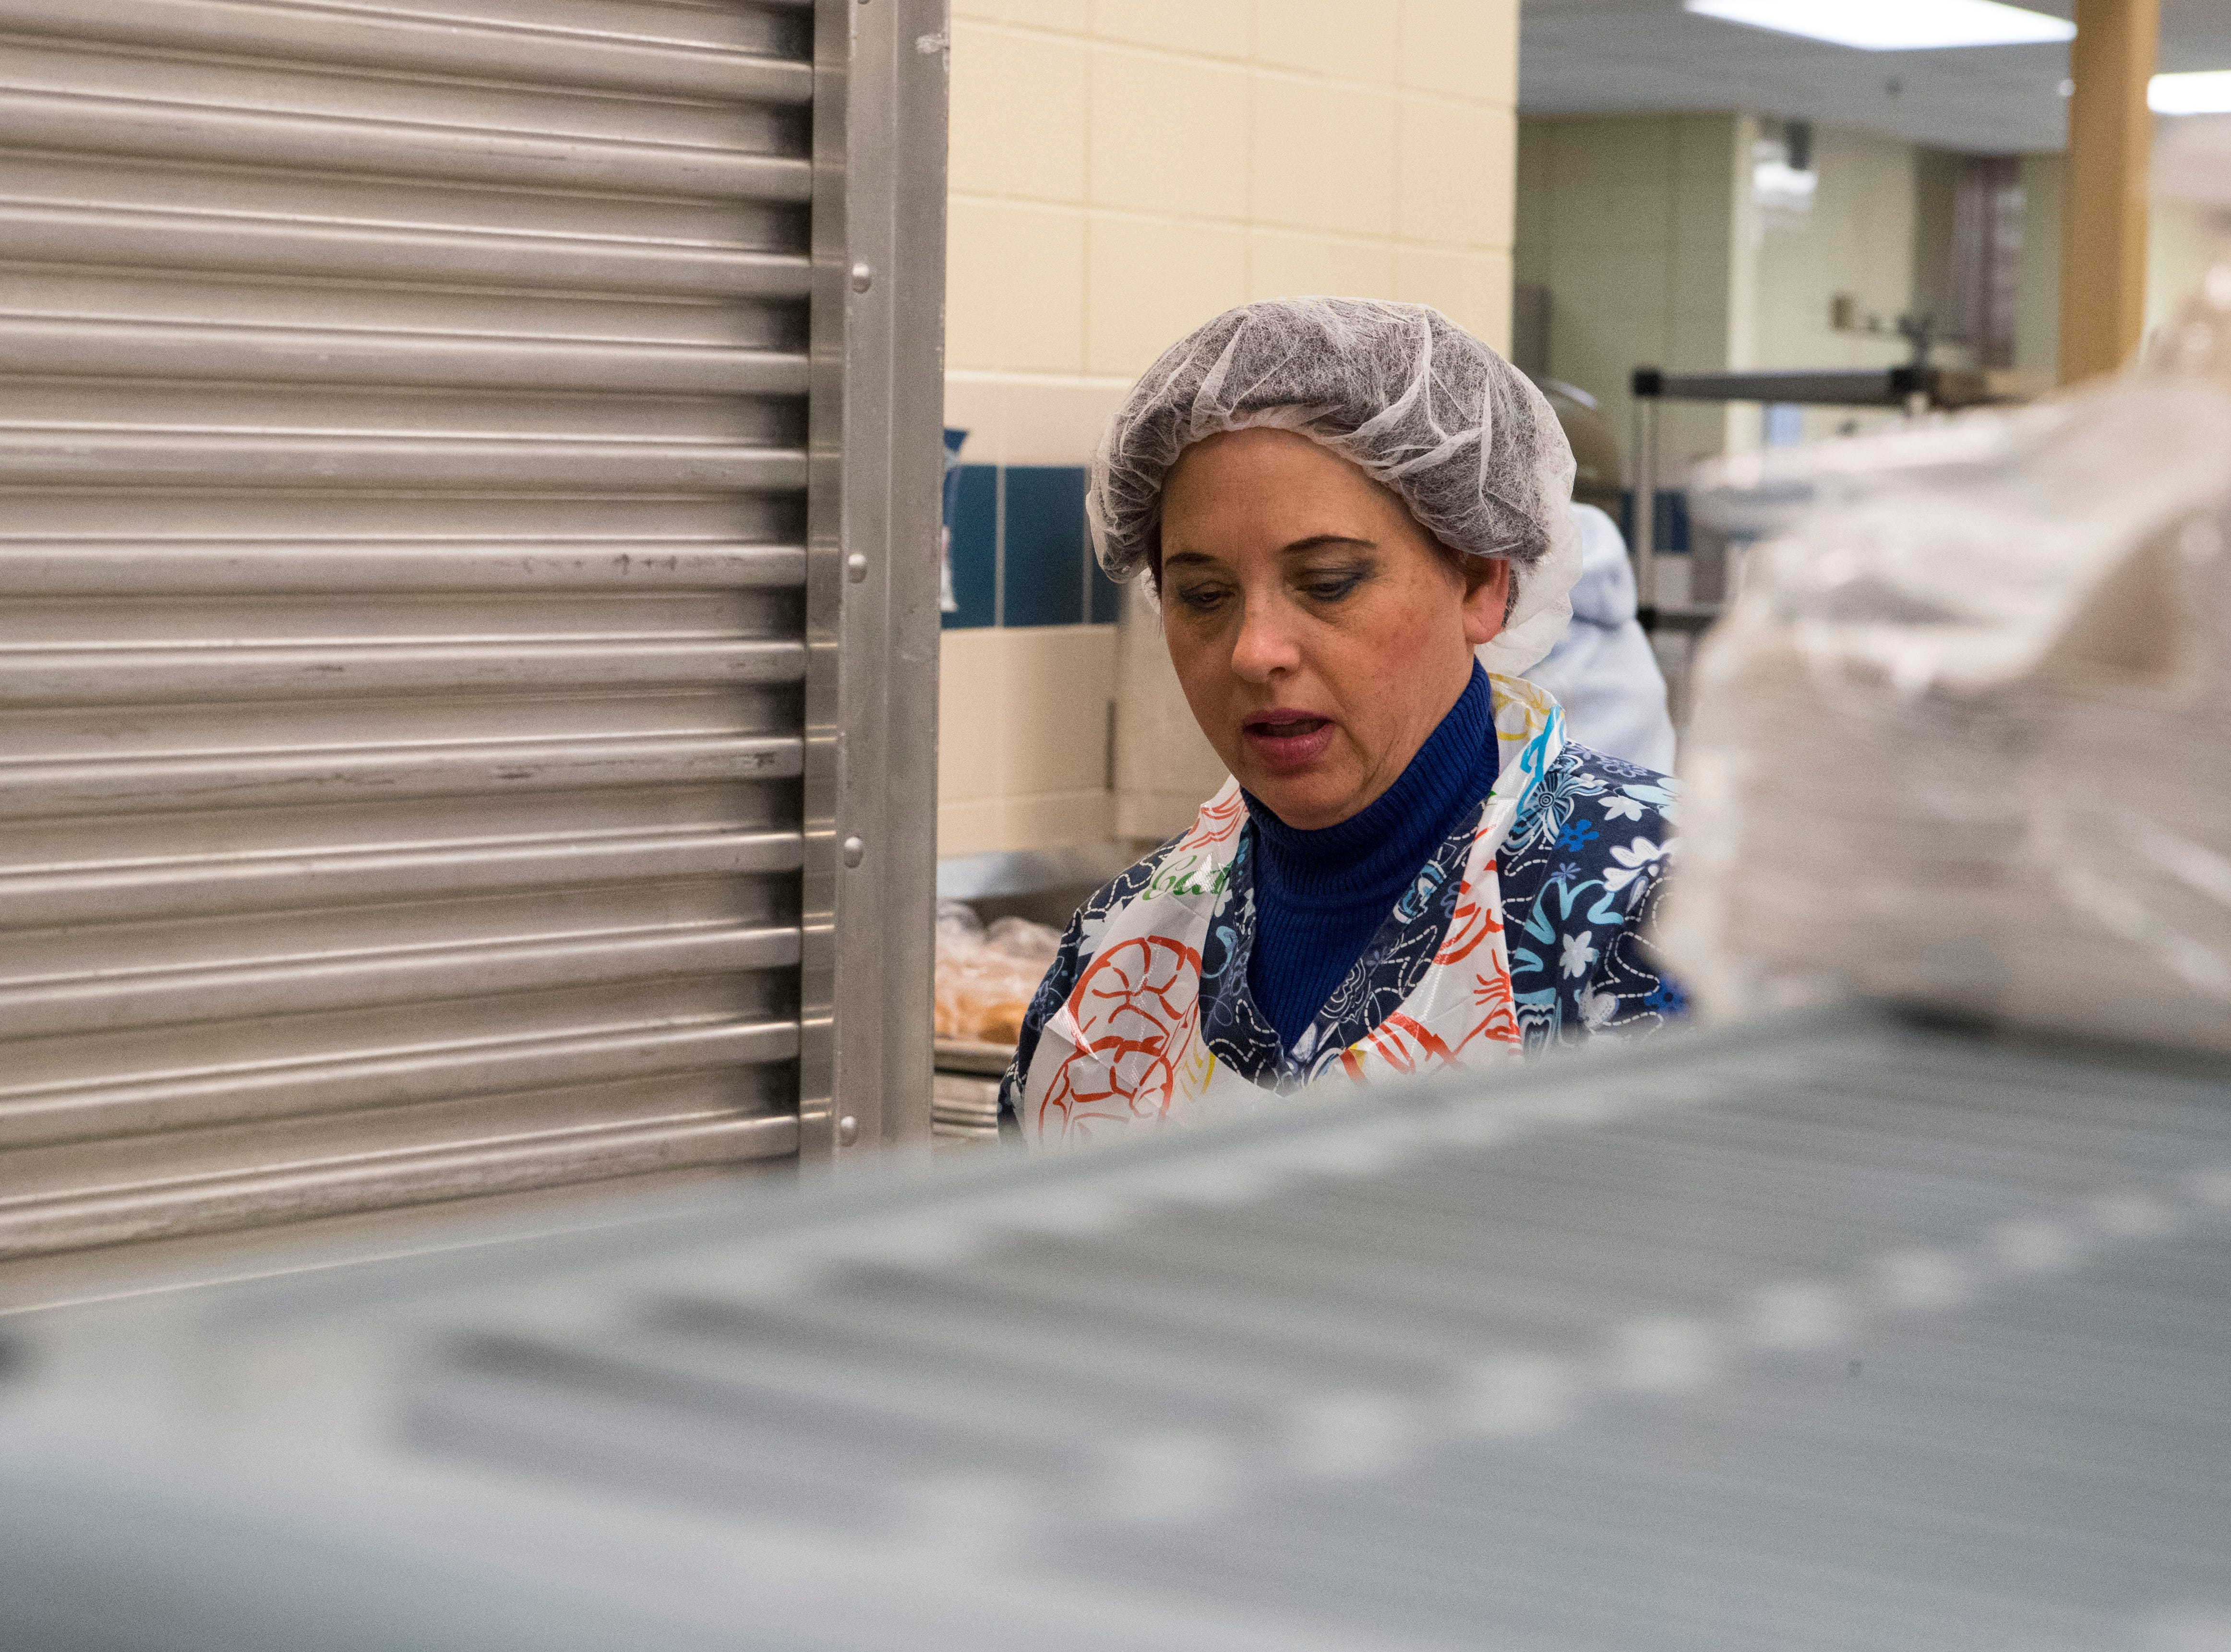 Sonja Rohan prepares meals for the public schools in Sioux Falls, S.D. at Child Nutrition Service, Tuesday, Jan. 8, 2019.